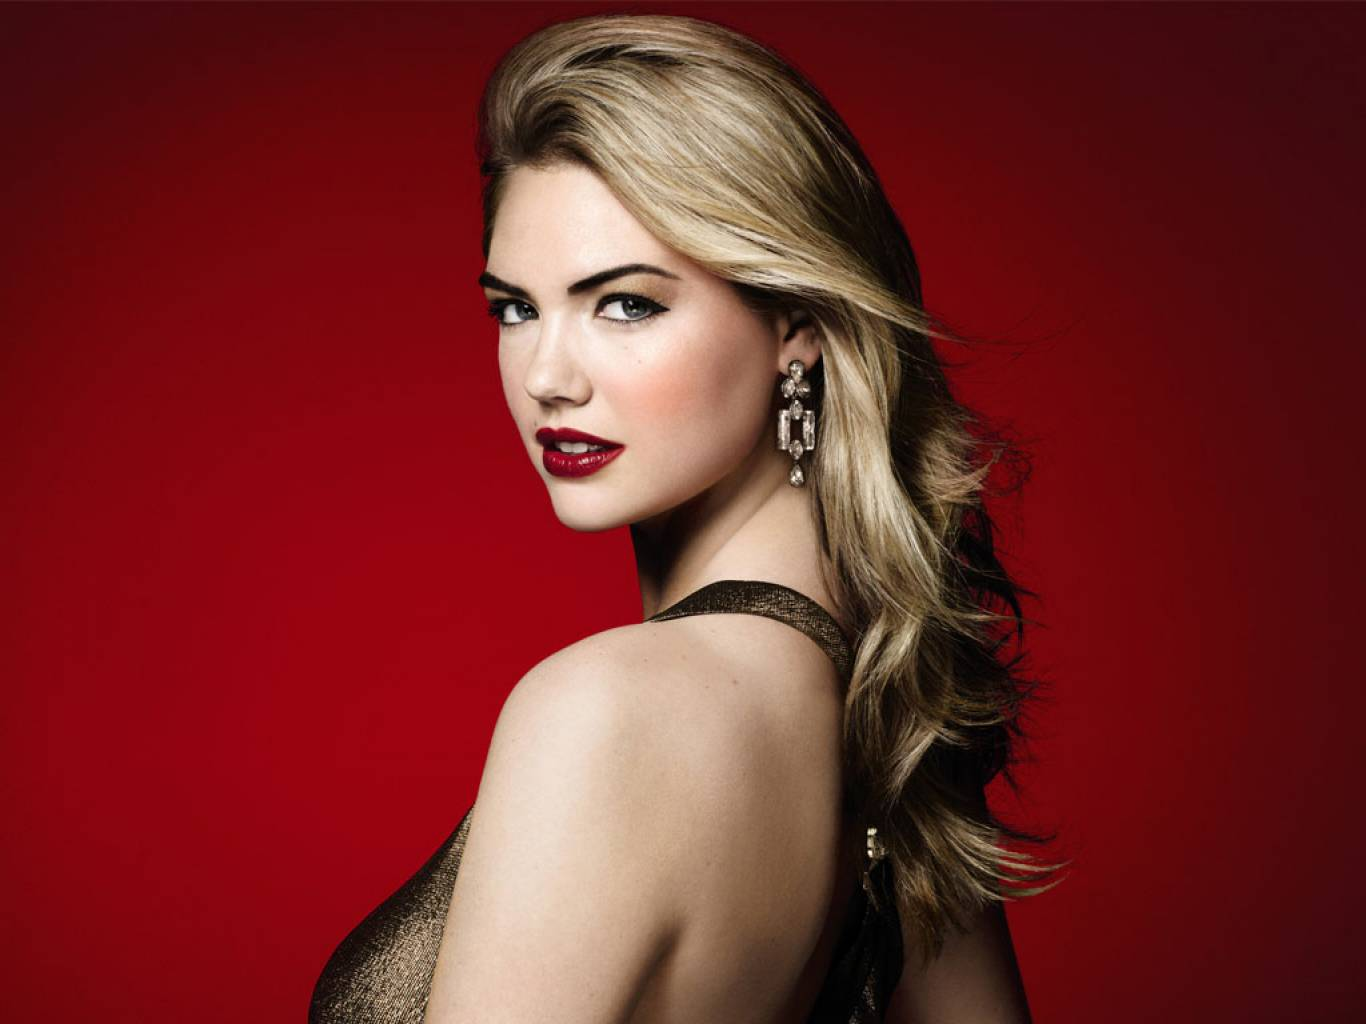 Kate Upton Hd Wallpapers Latest Kate Upton Wallpapers Hd